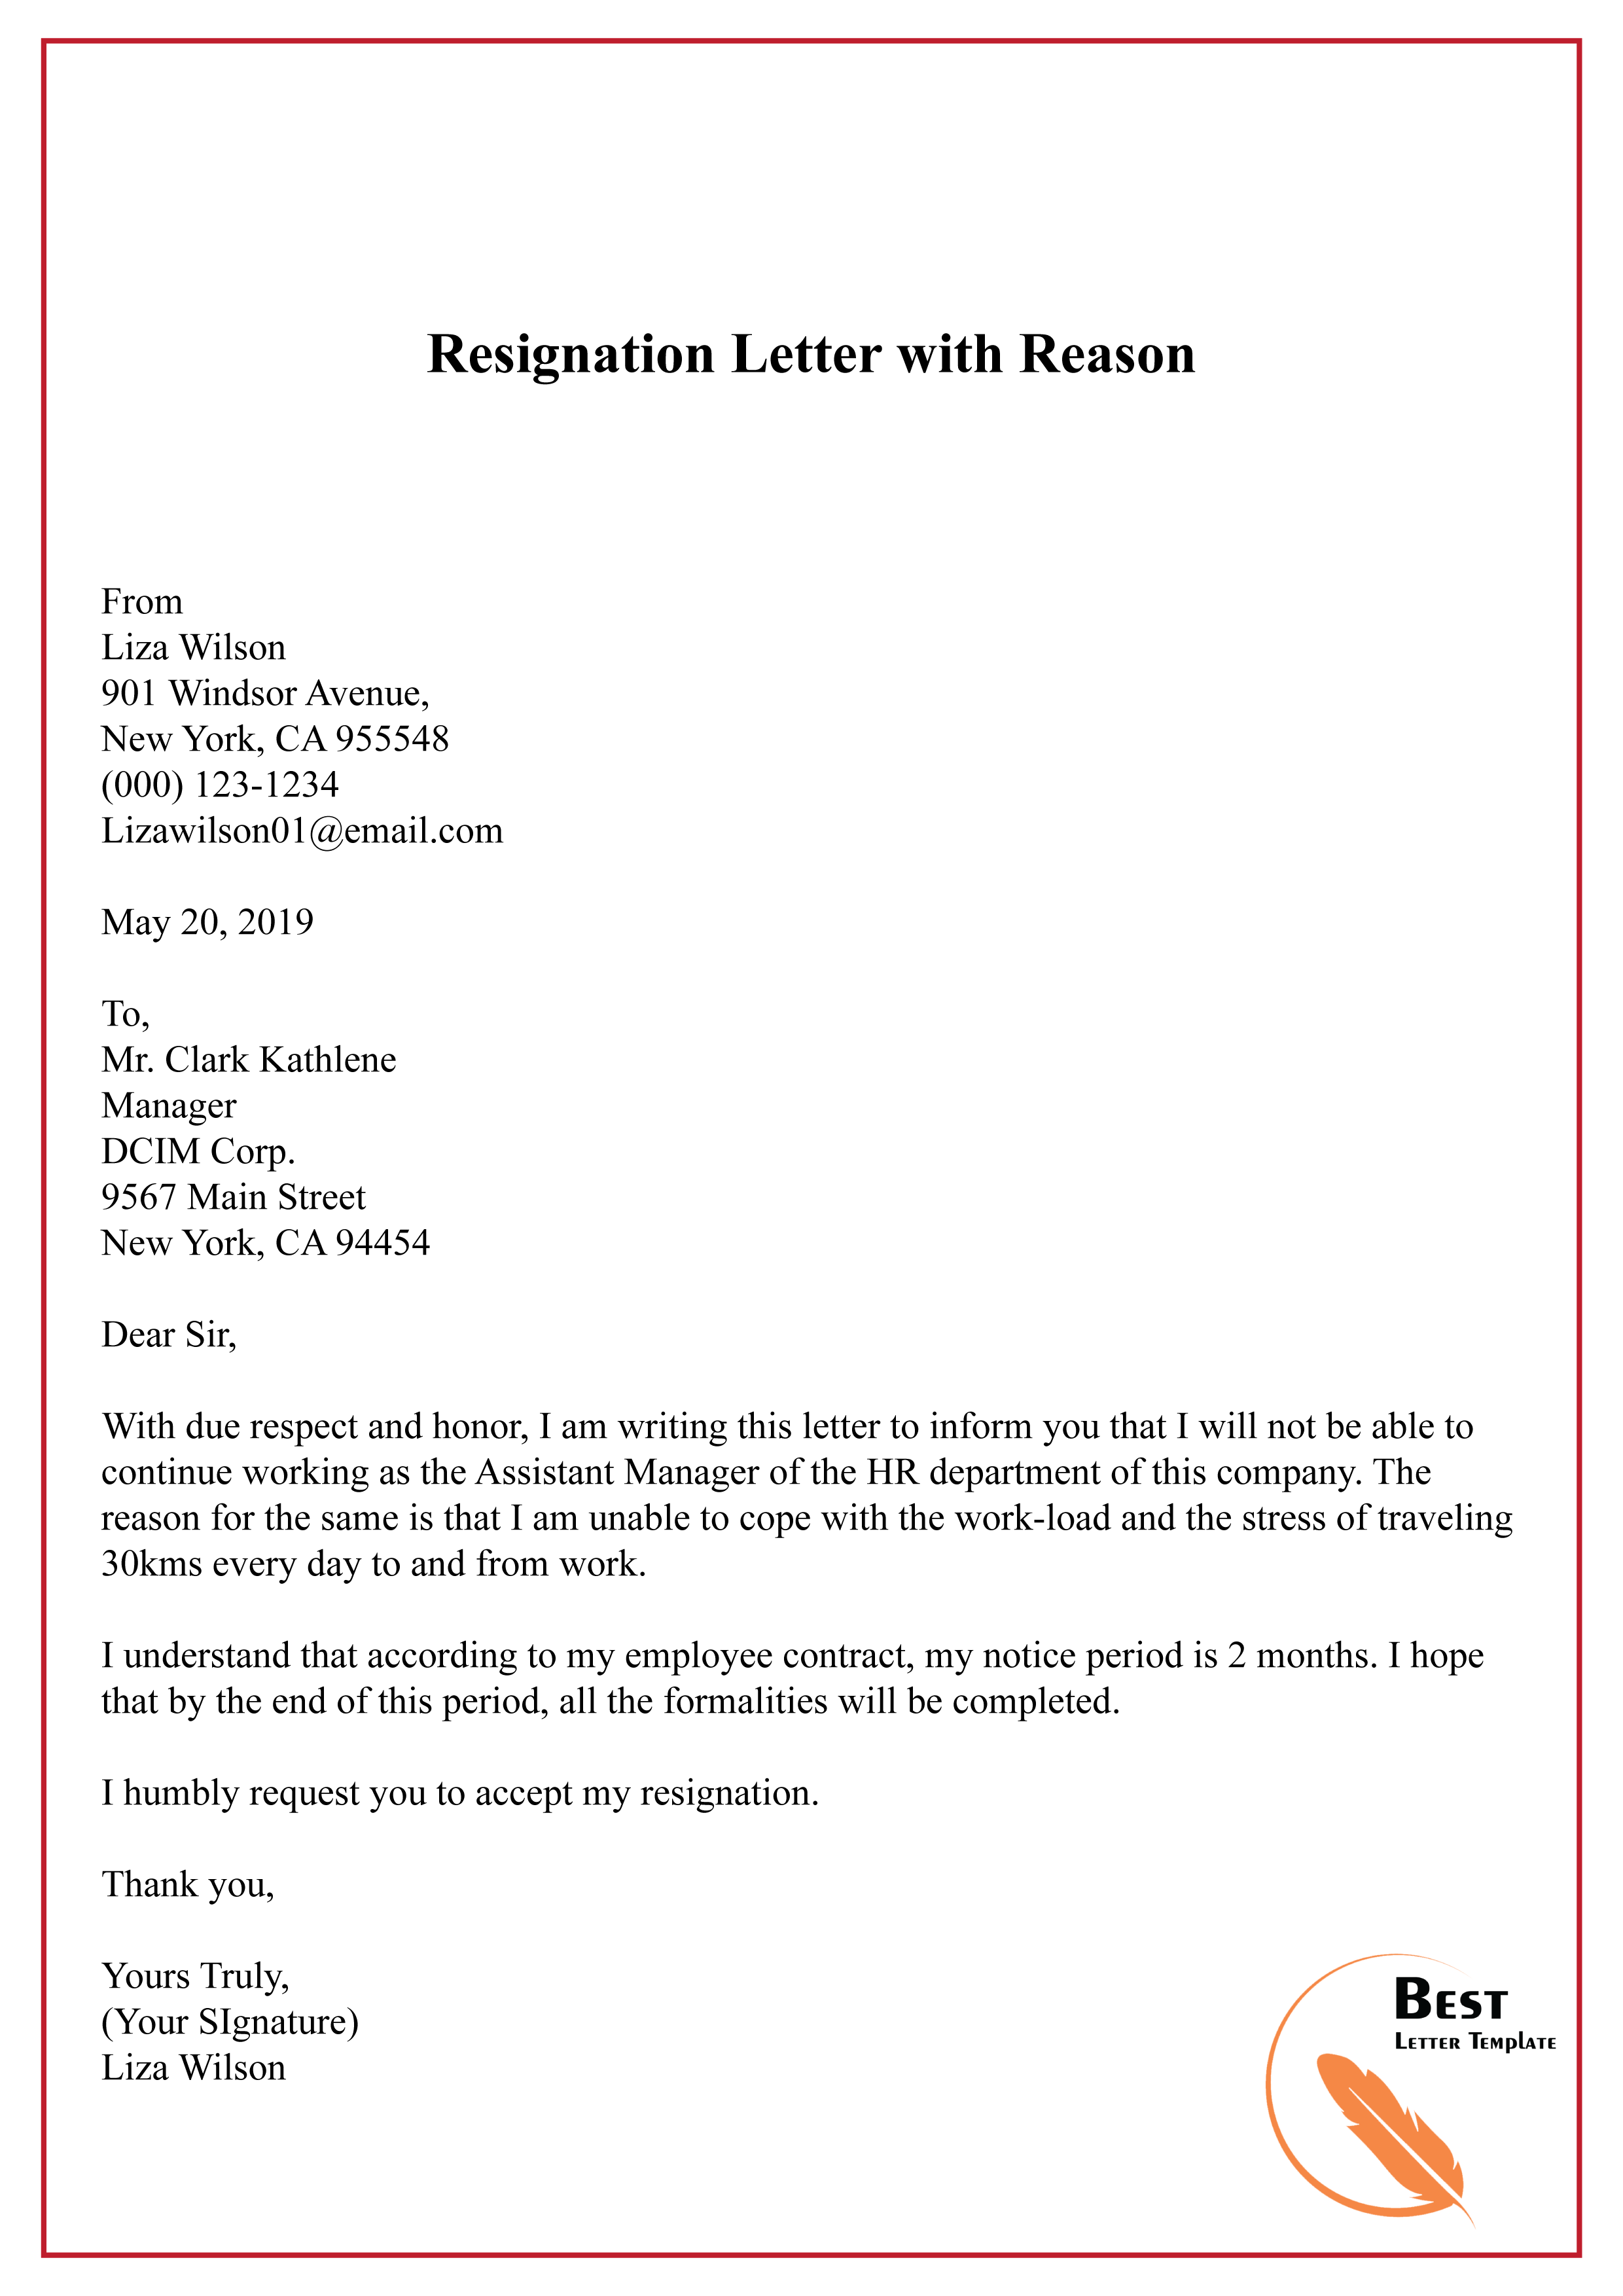 Resignation Letter with Reason-01 - Best Letter Template